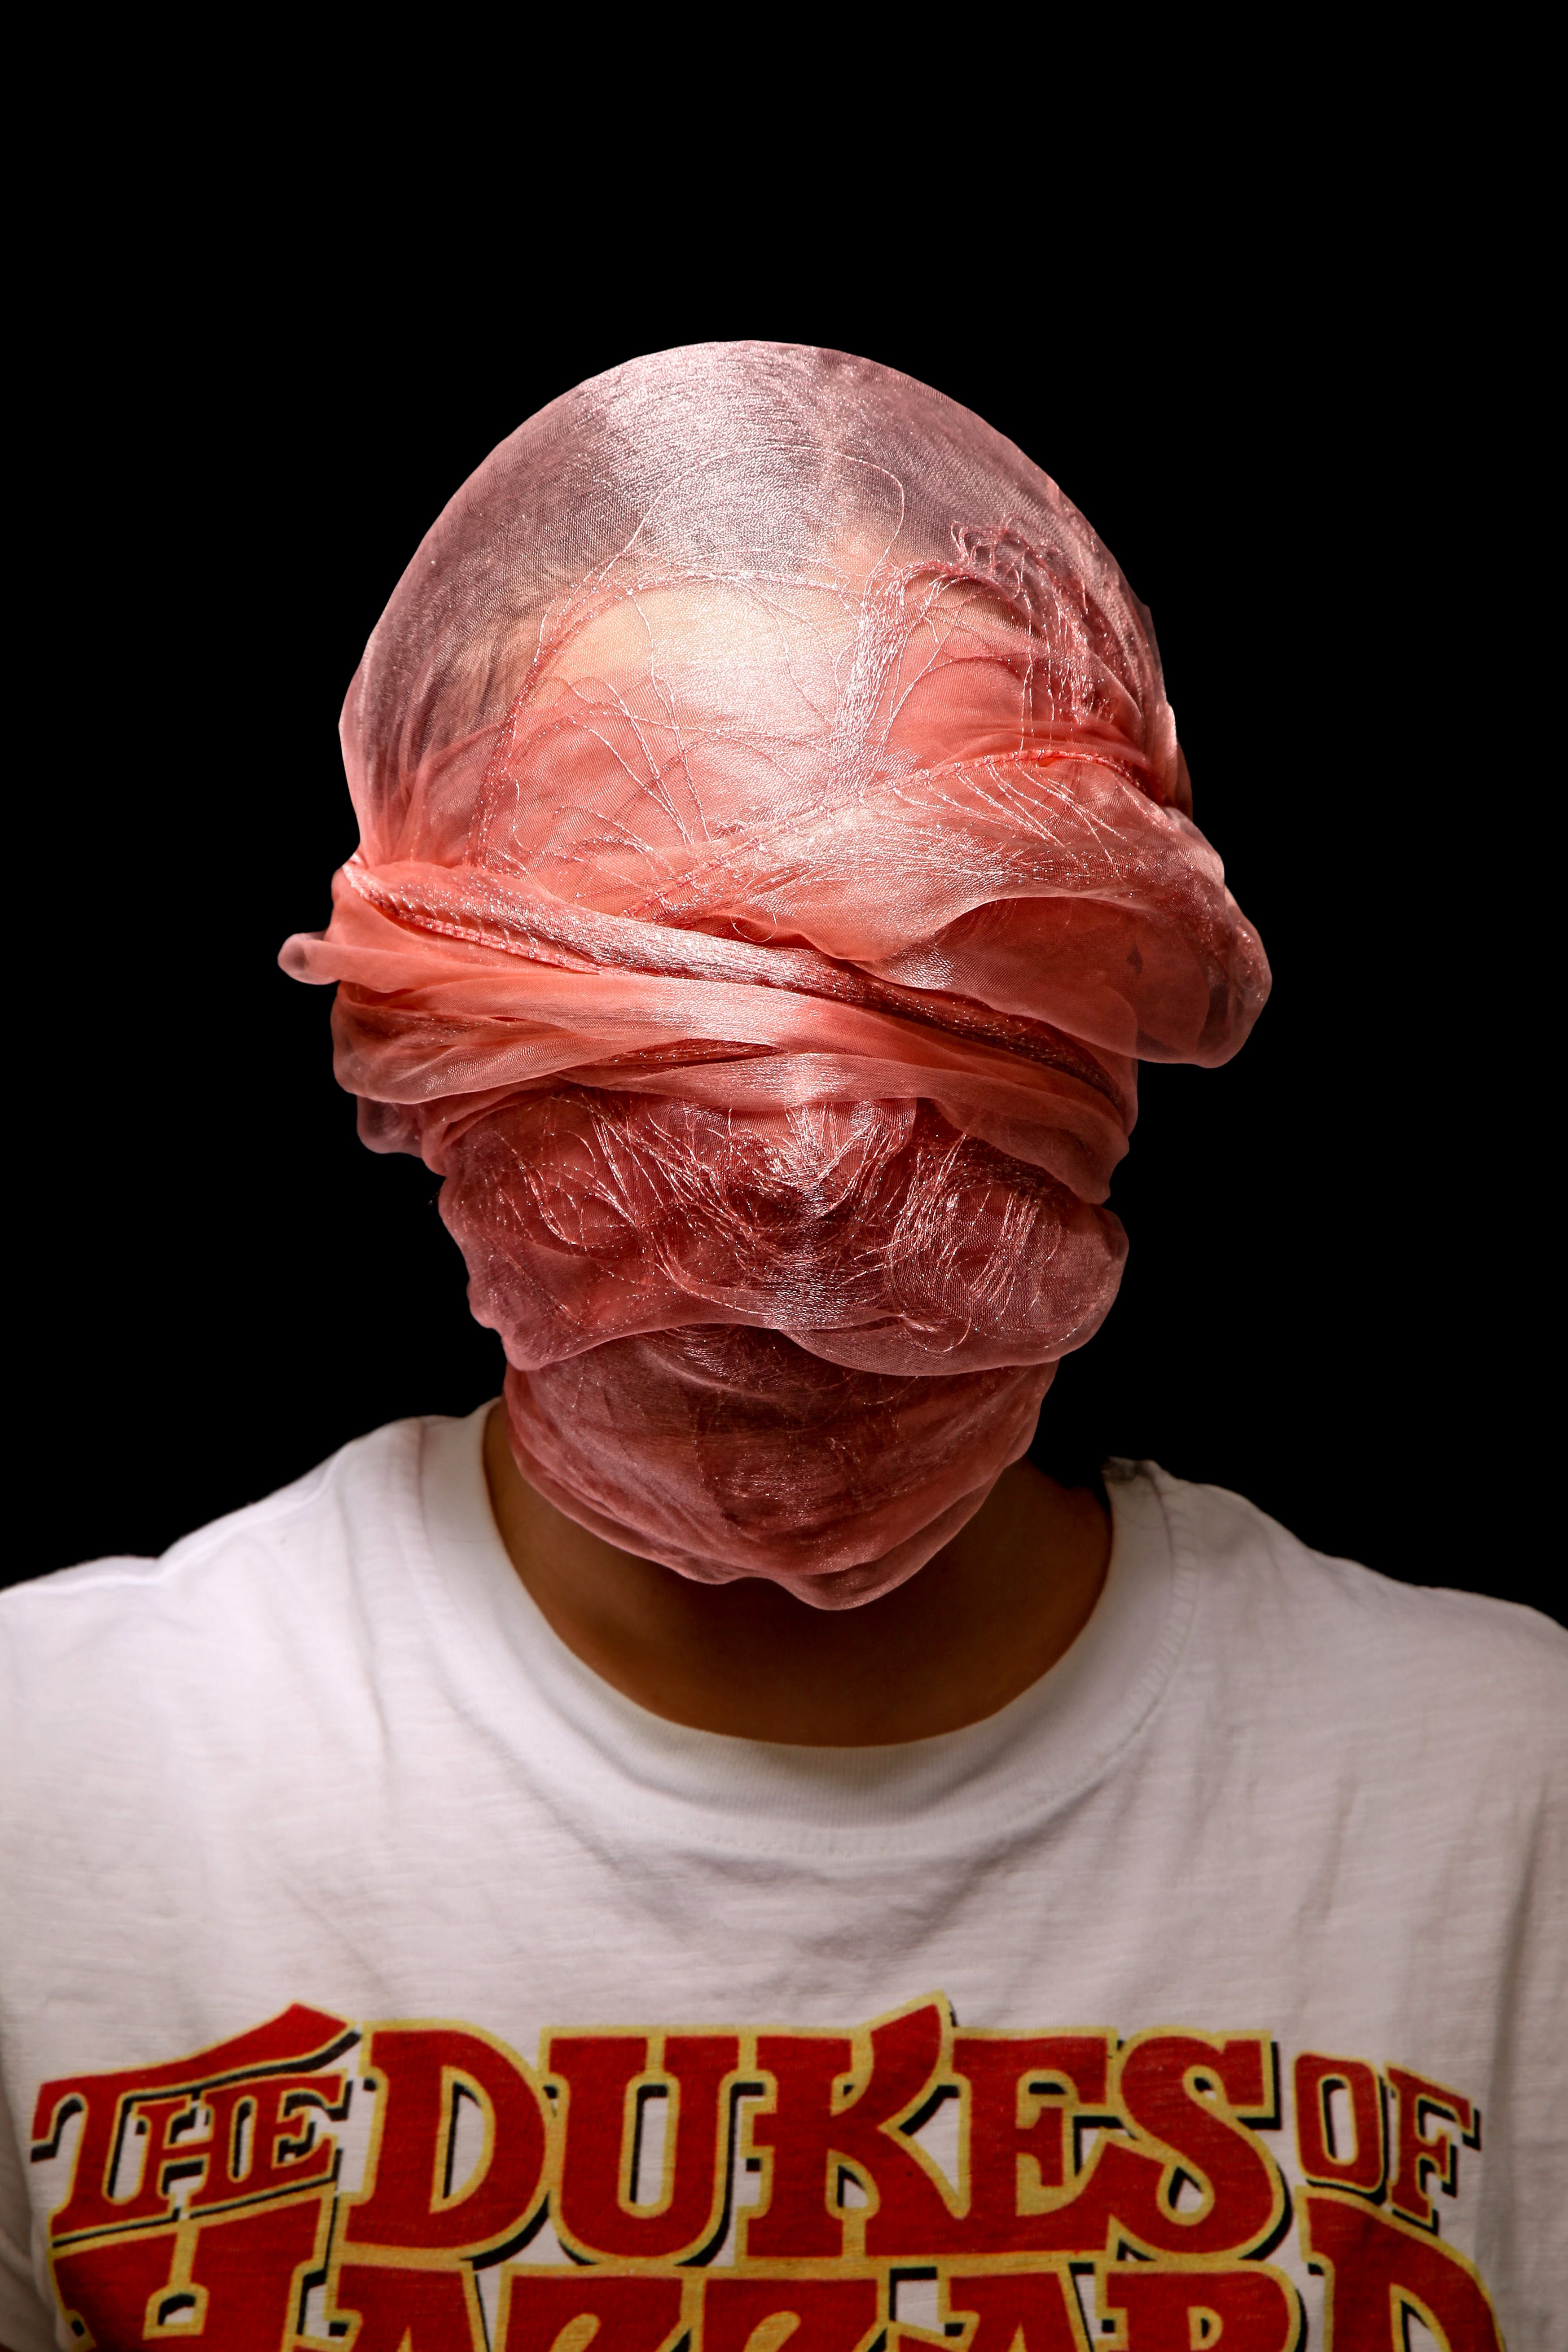 Person in t shirt covering their face with a scarf